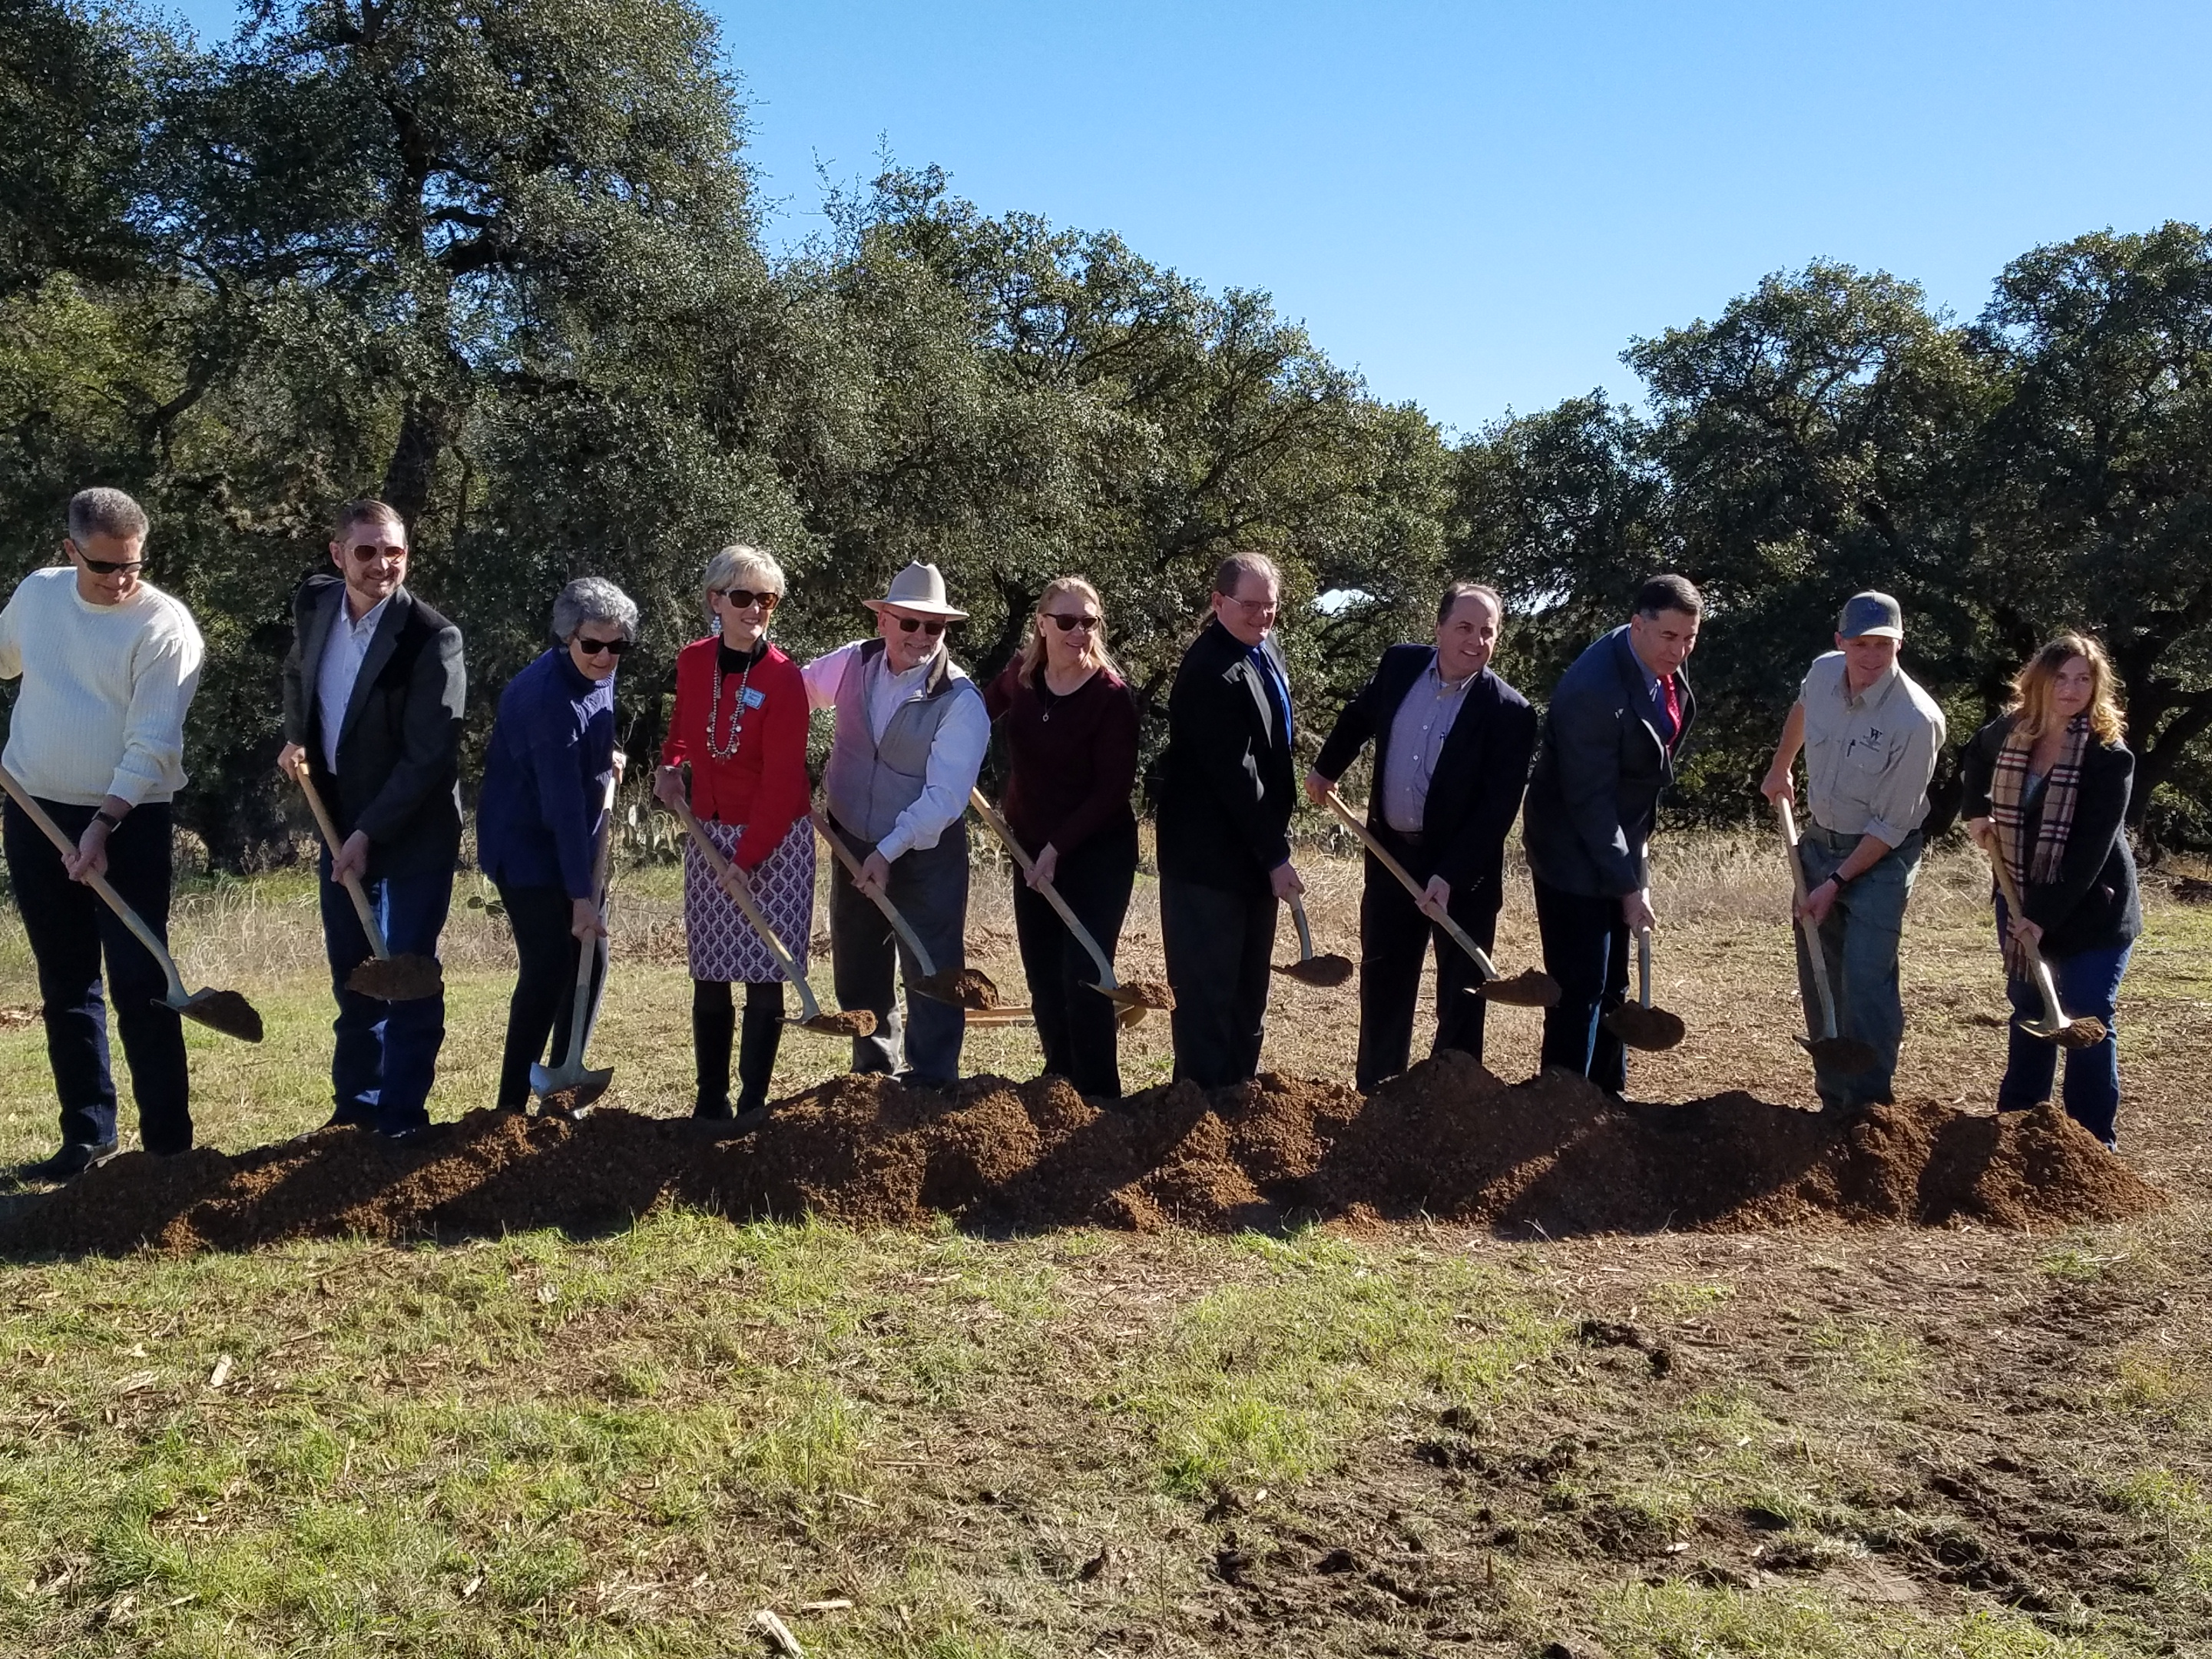 A group of city and county officials, as well as those involved with developing the park, dig up dirt with their shovels to officially break ground for River Ranch Park.